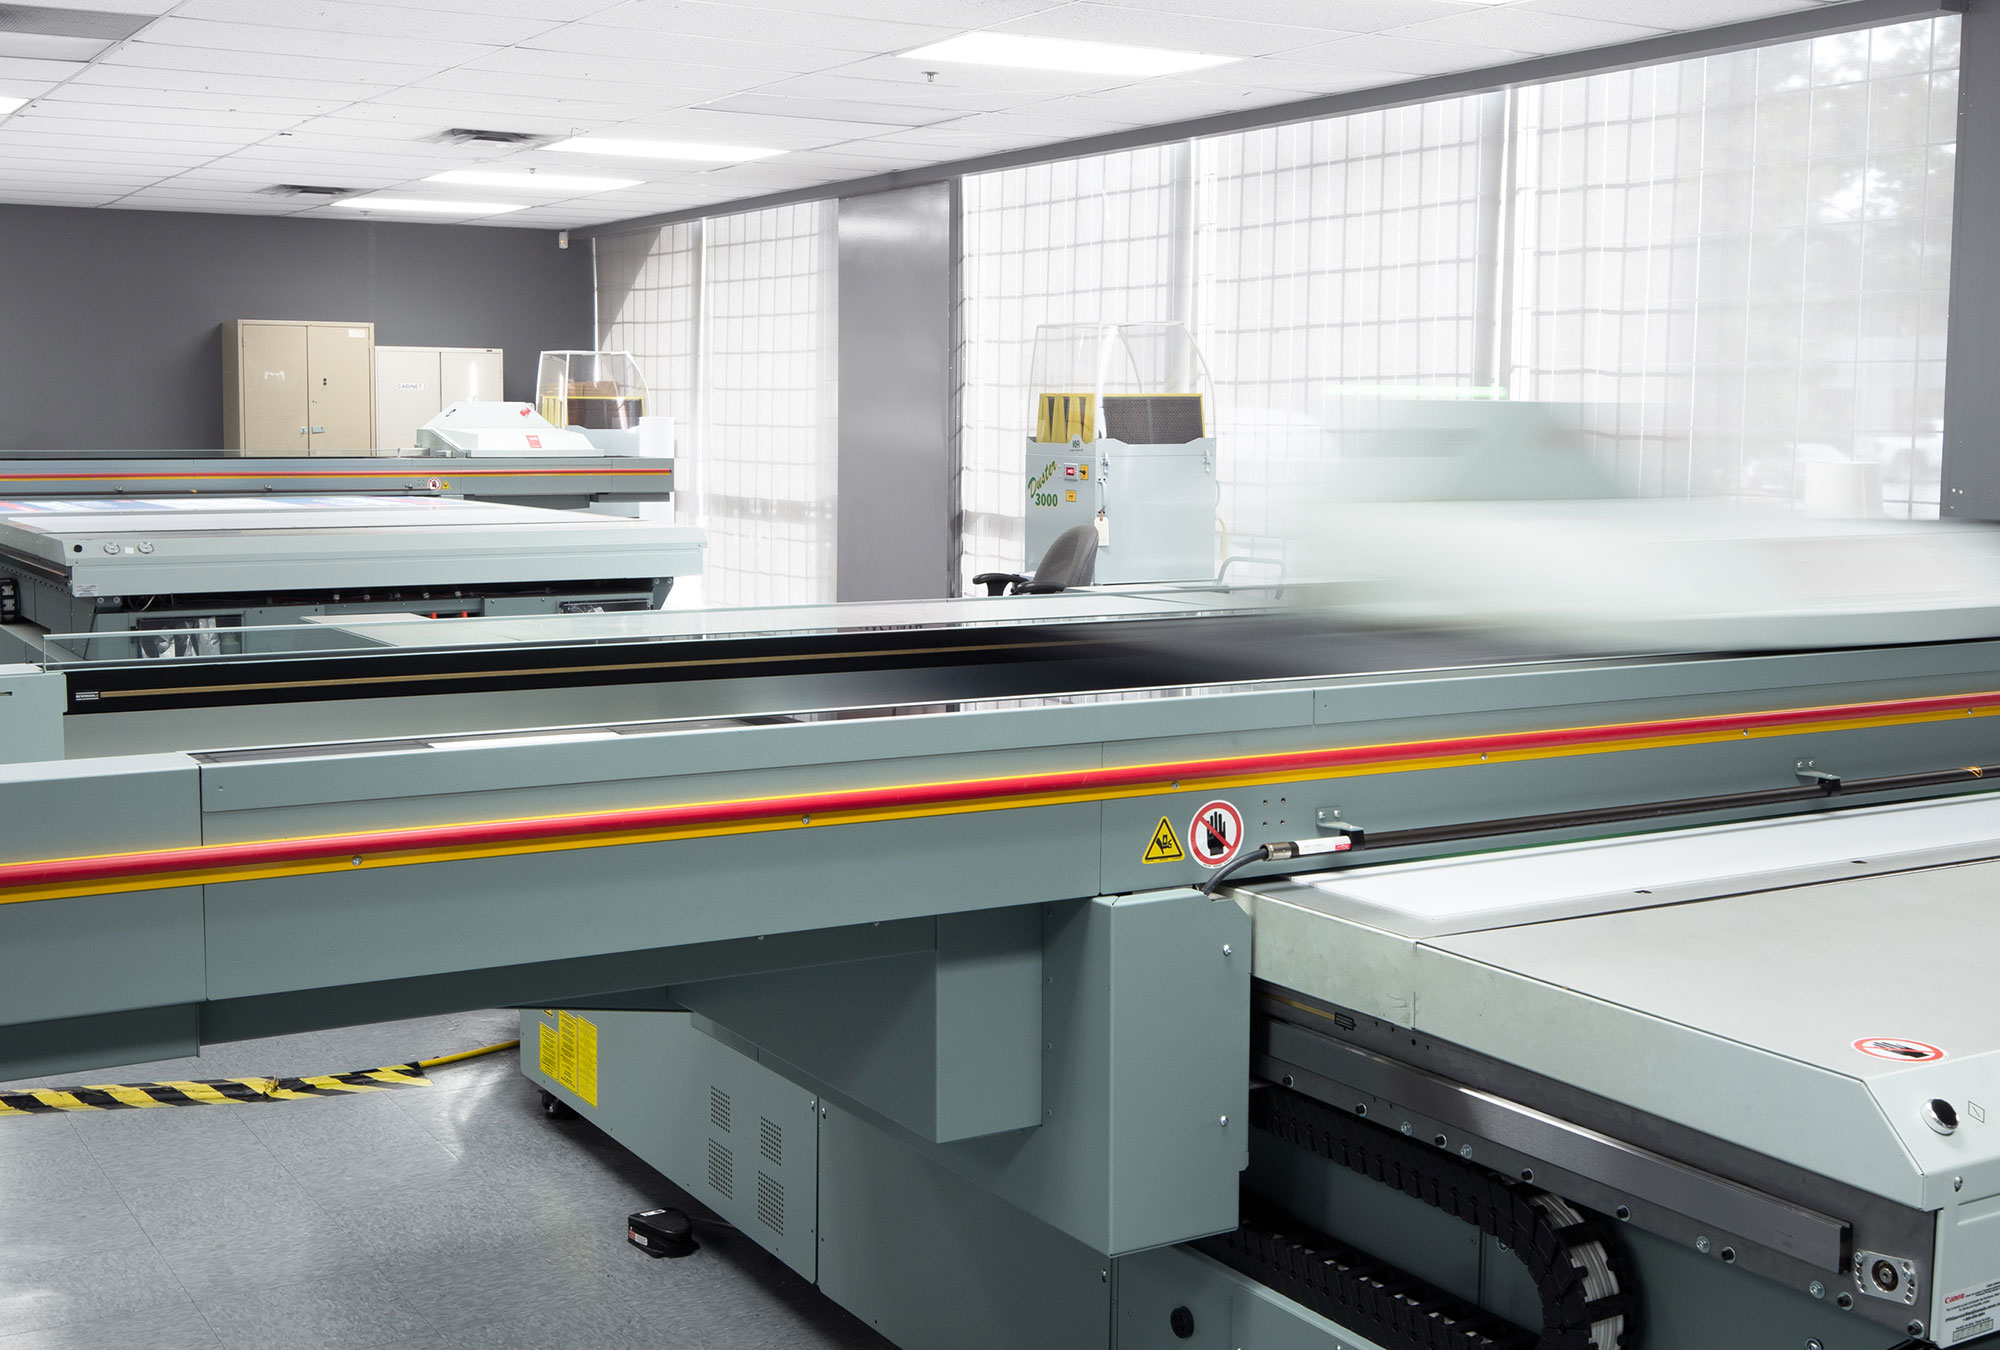 2 UV flatbed printers with moving pressheads